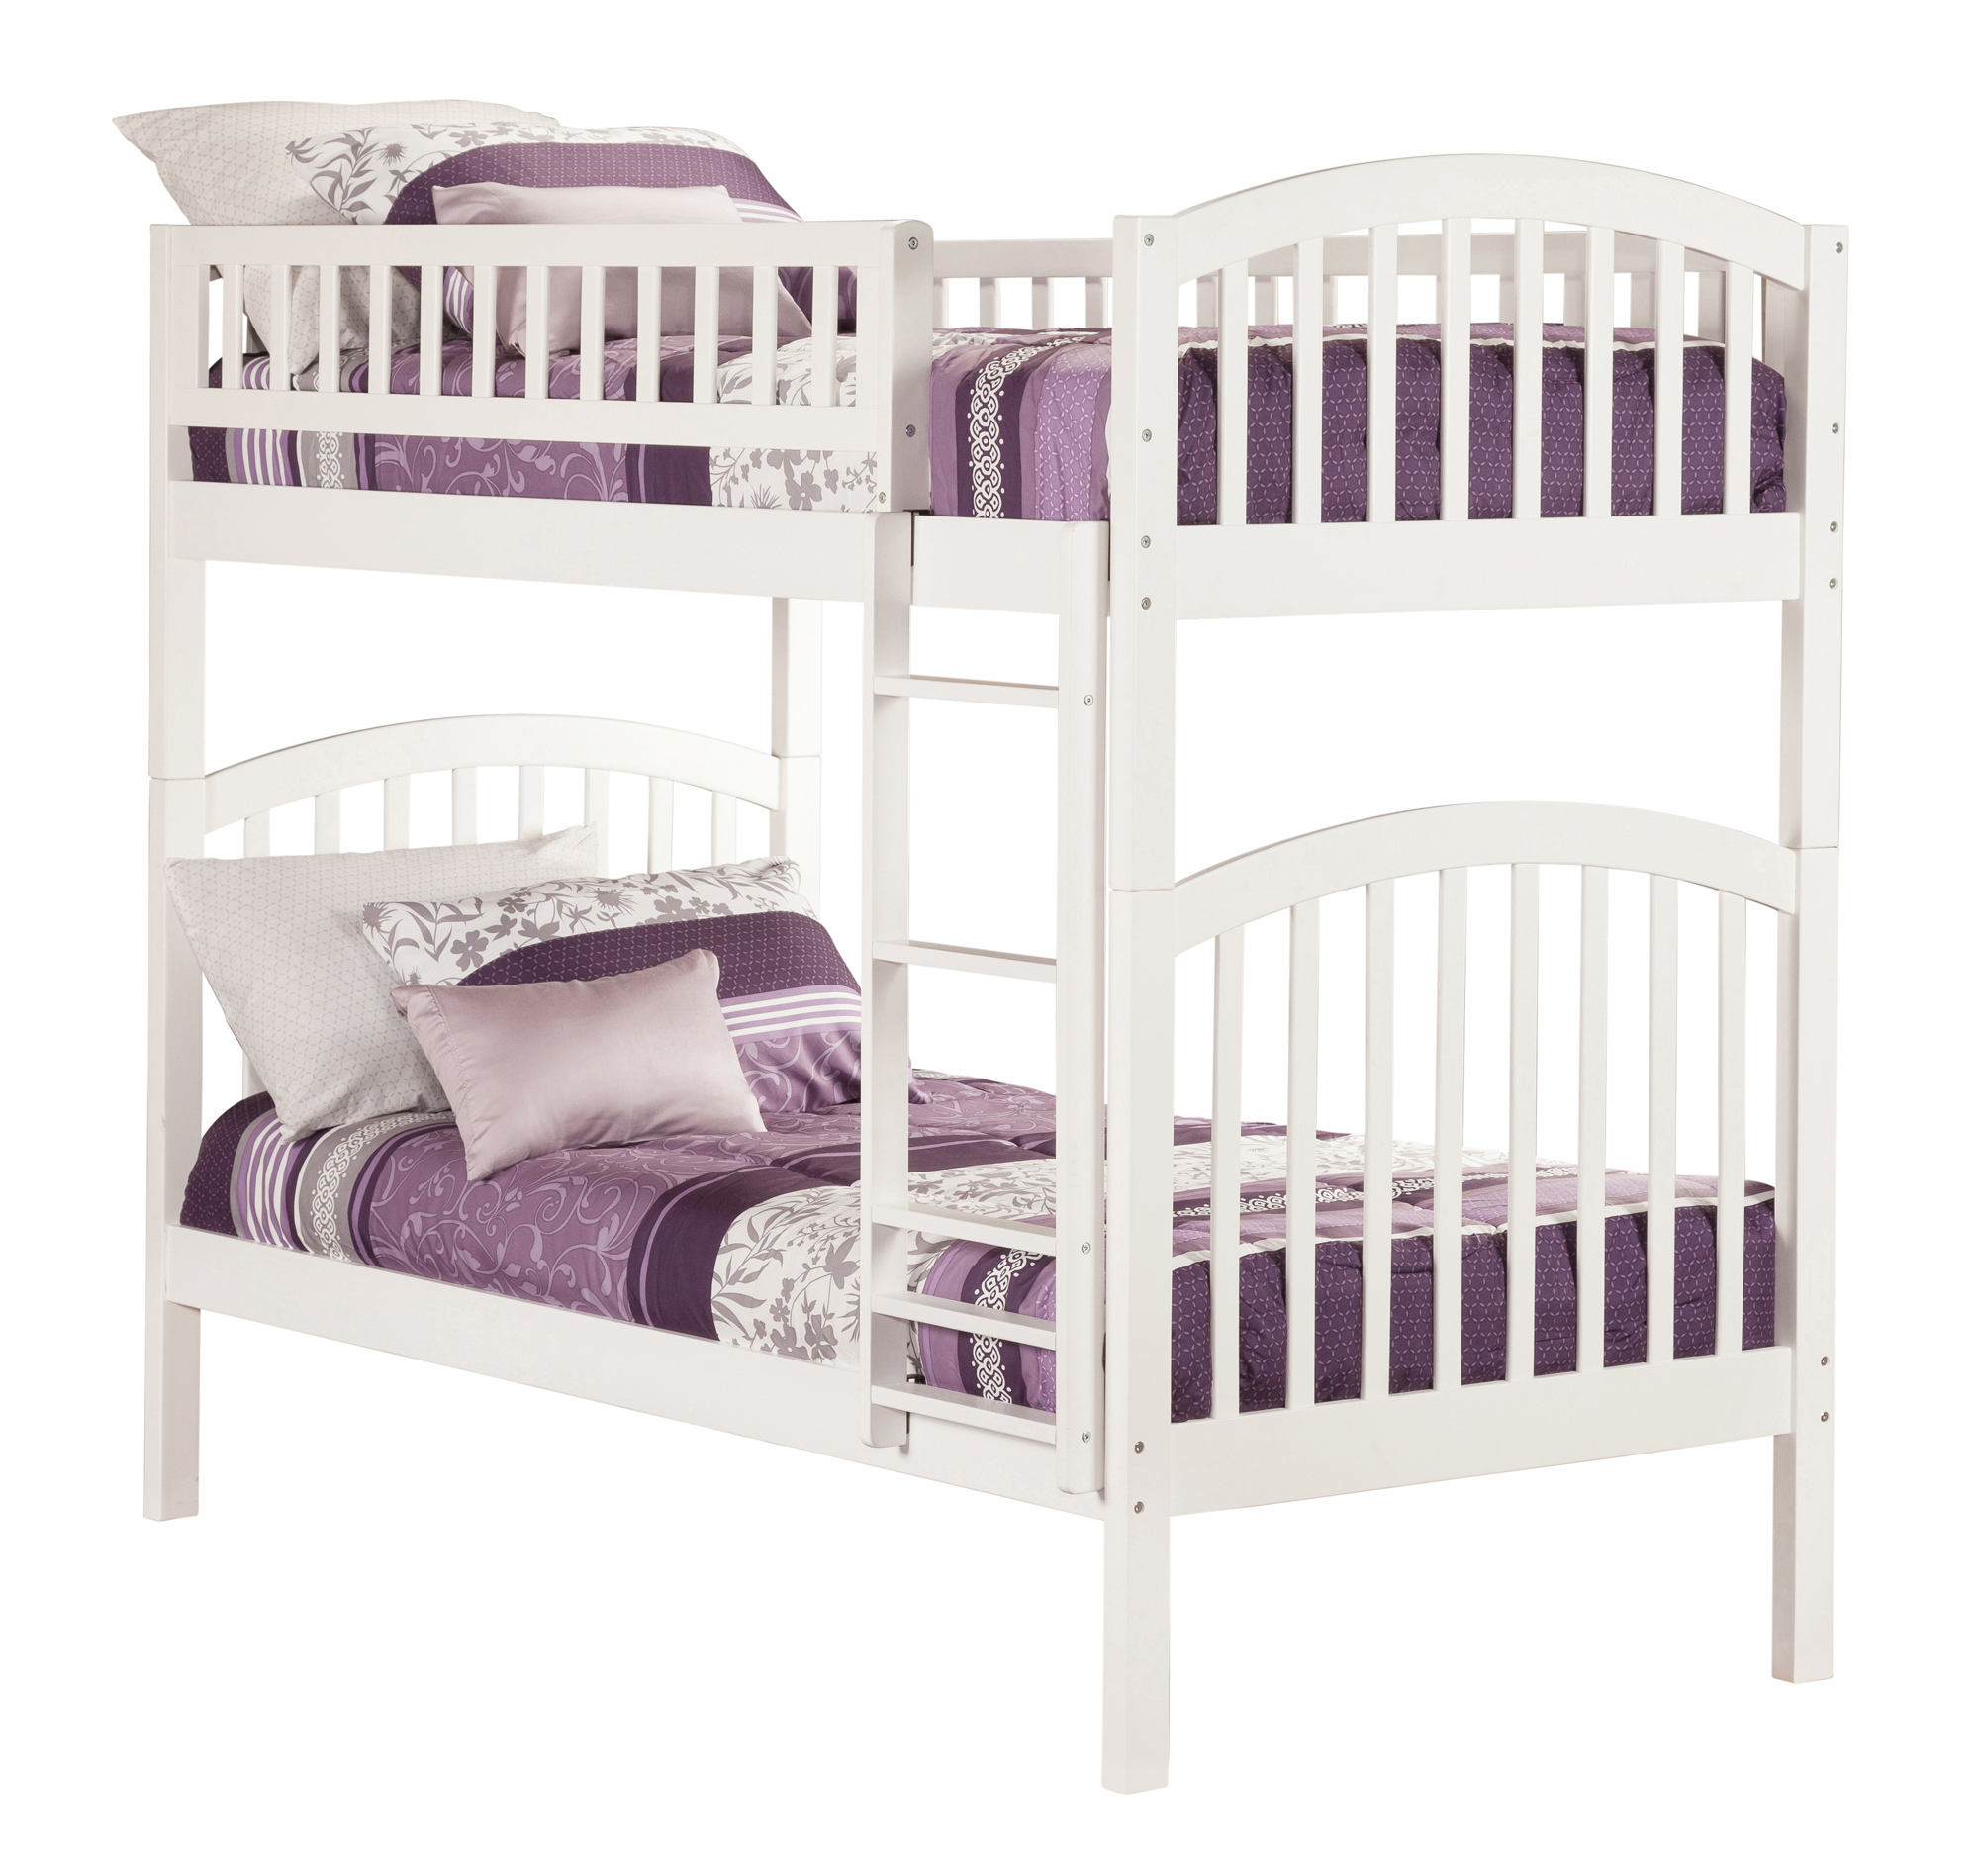 Richland Bunk Bed Twin over Twin in Multiple Colors and Configurations